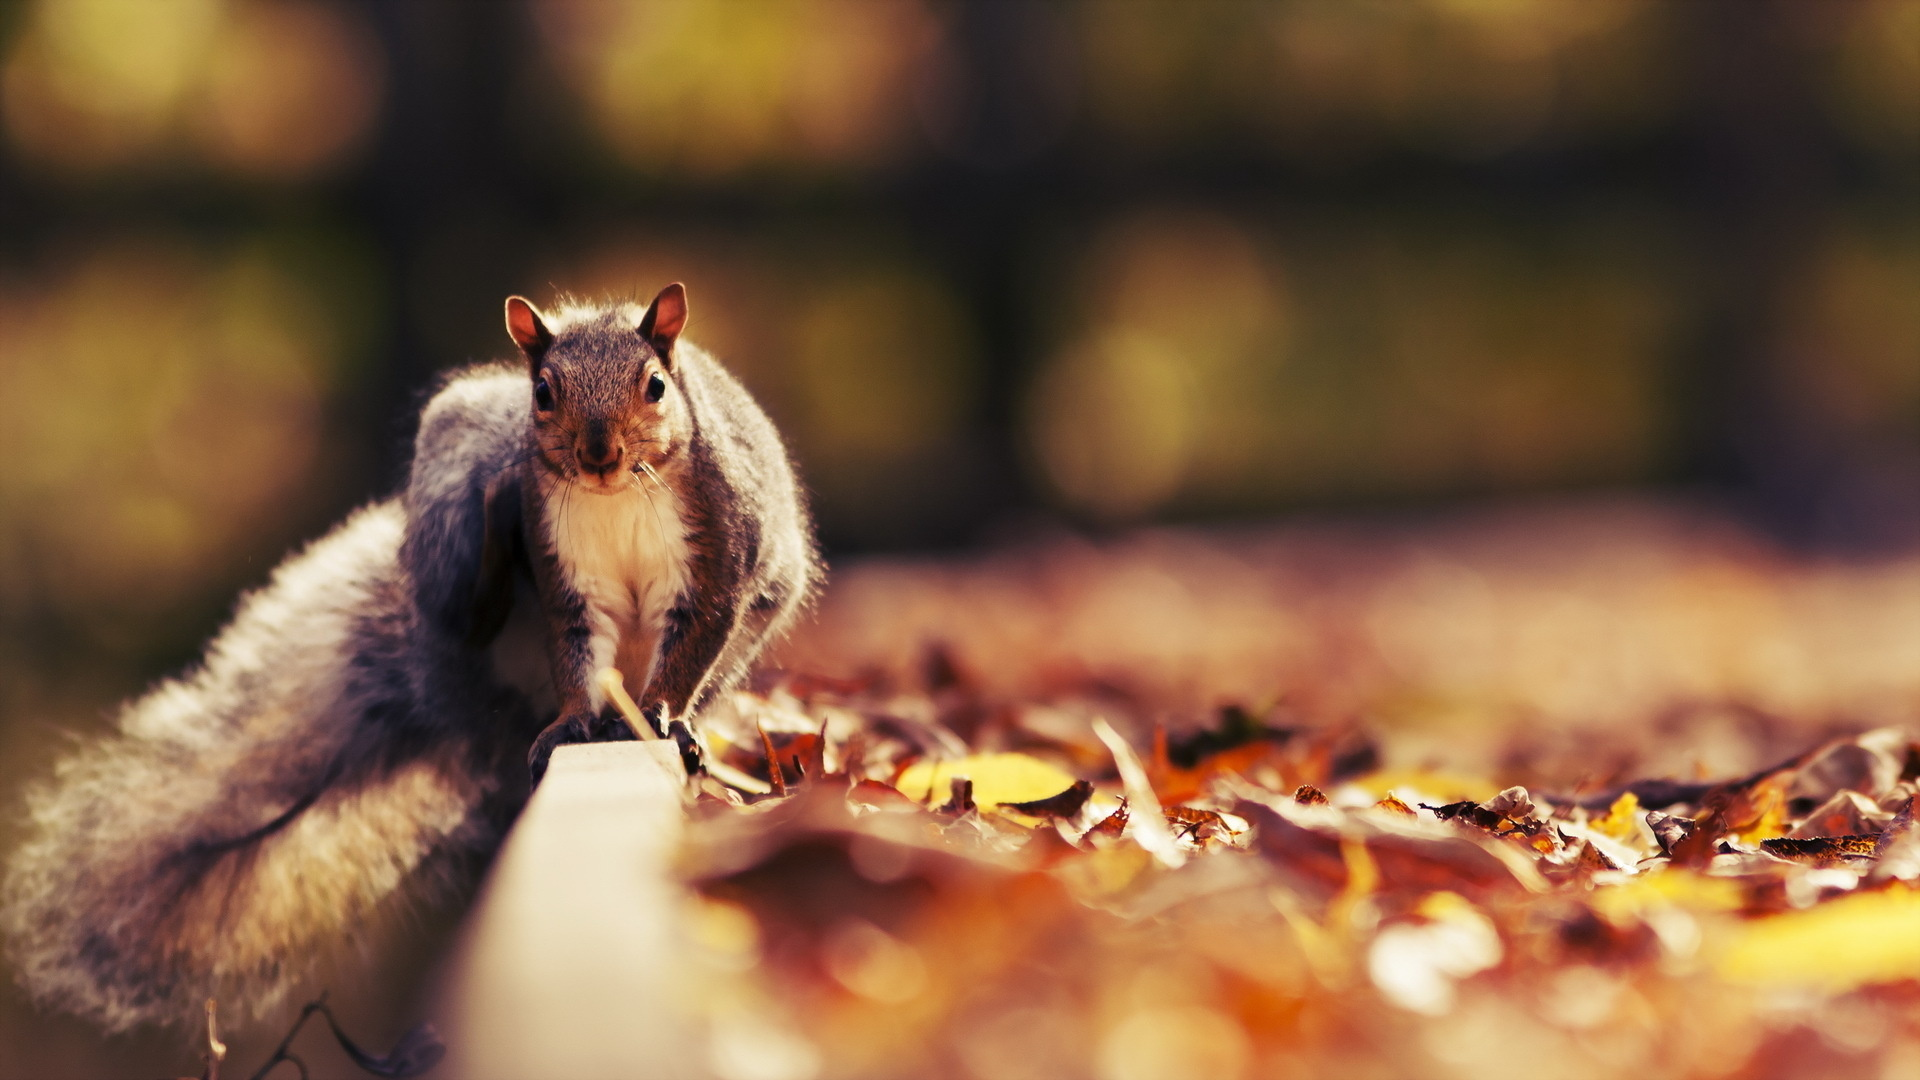 squirrel wallpaper - photo #37